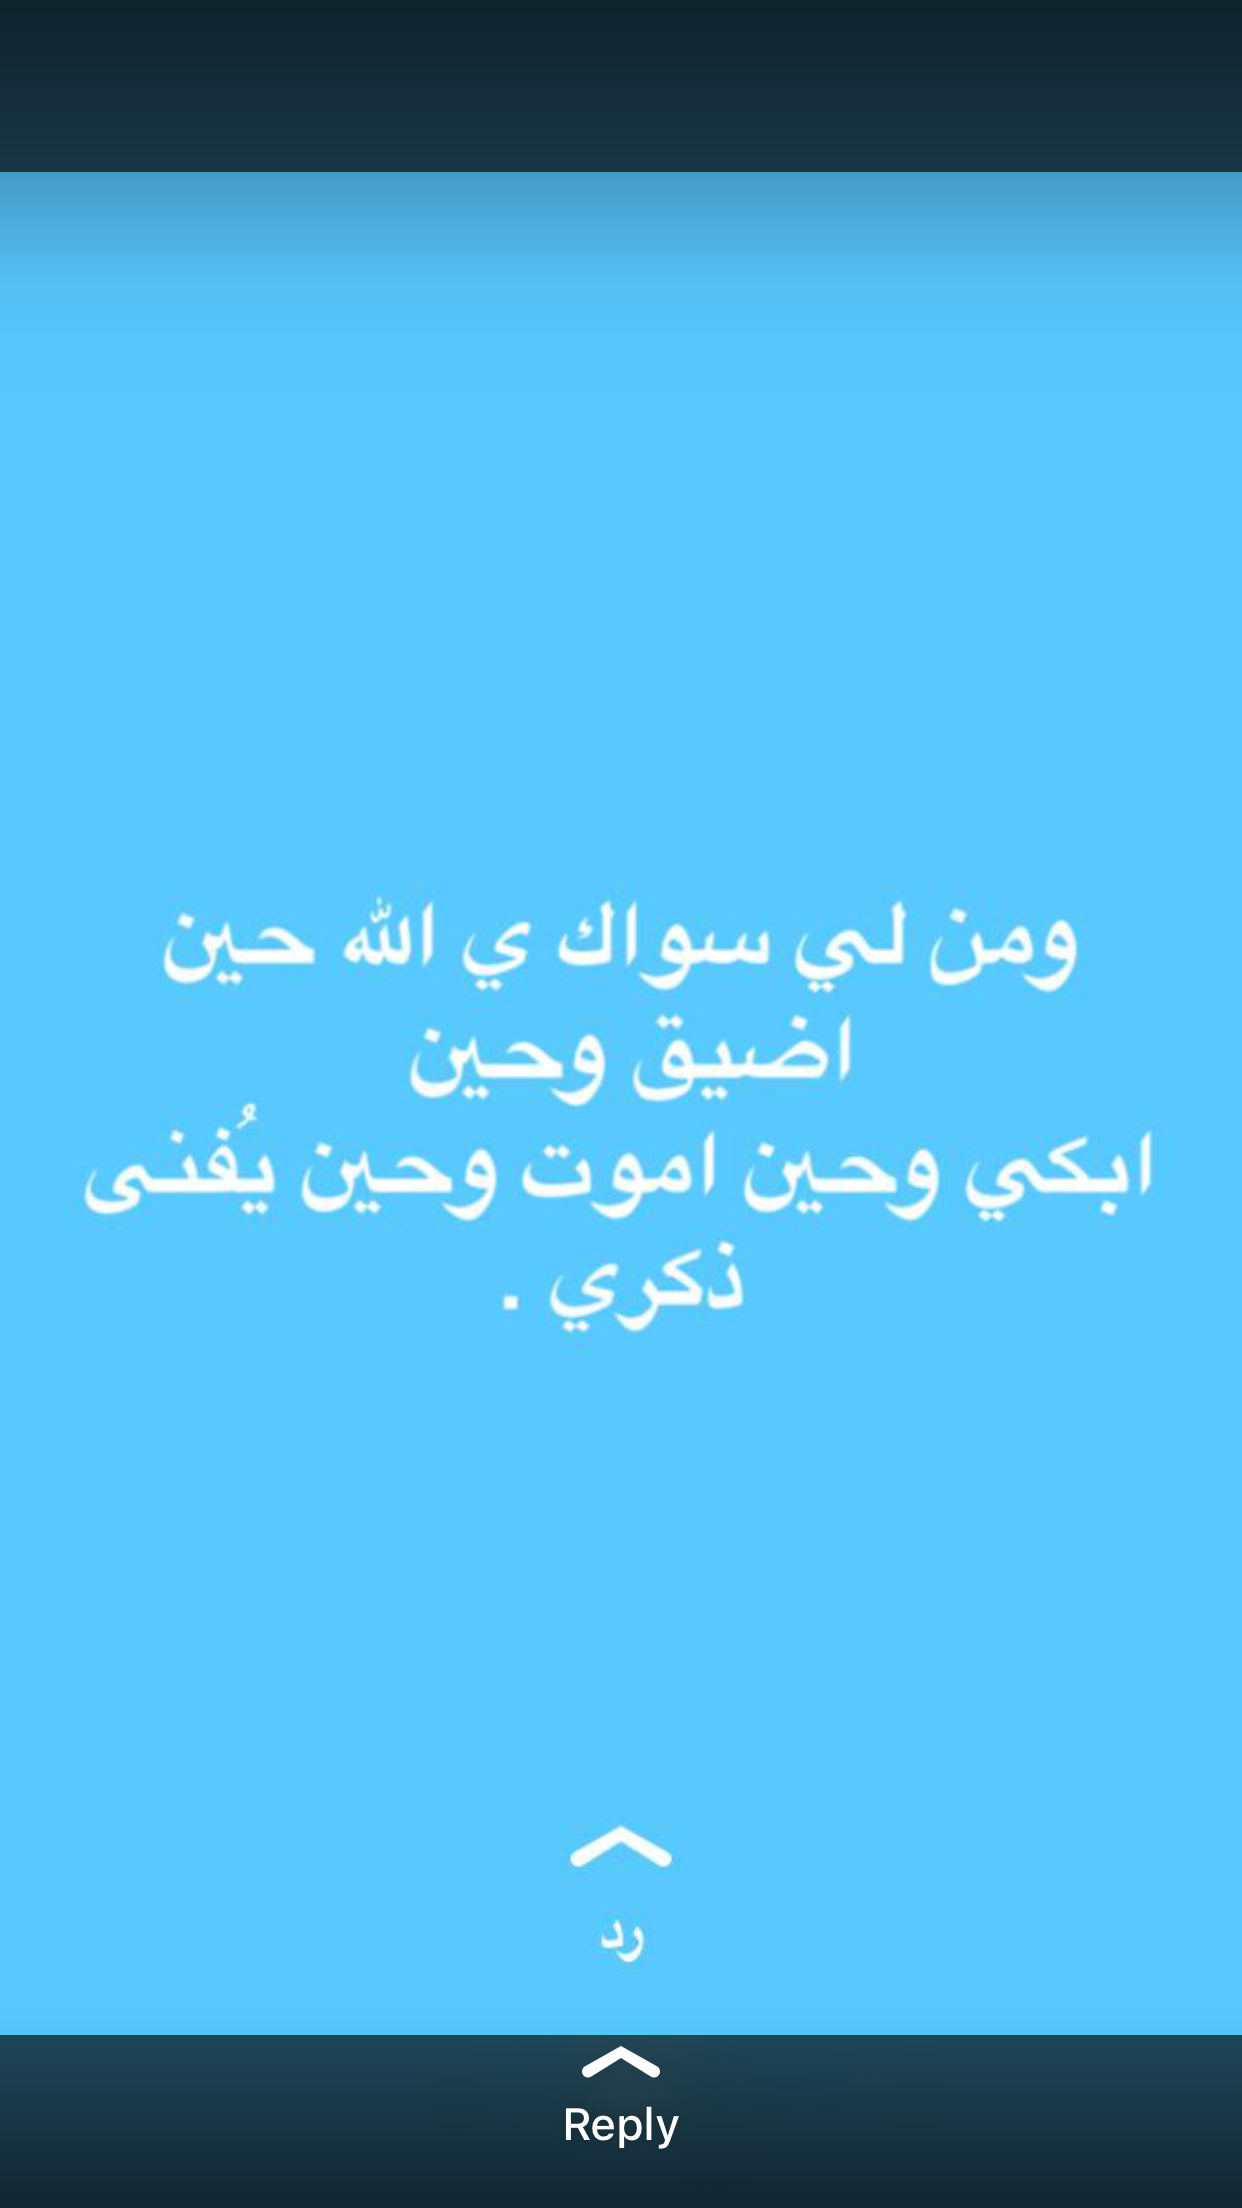 Pin By Cutestar On Arabic Quote Girl Photo Poses Photo Poses Girl Photos